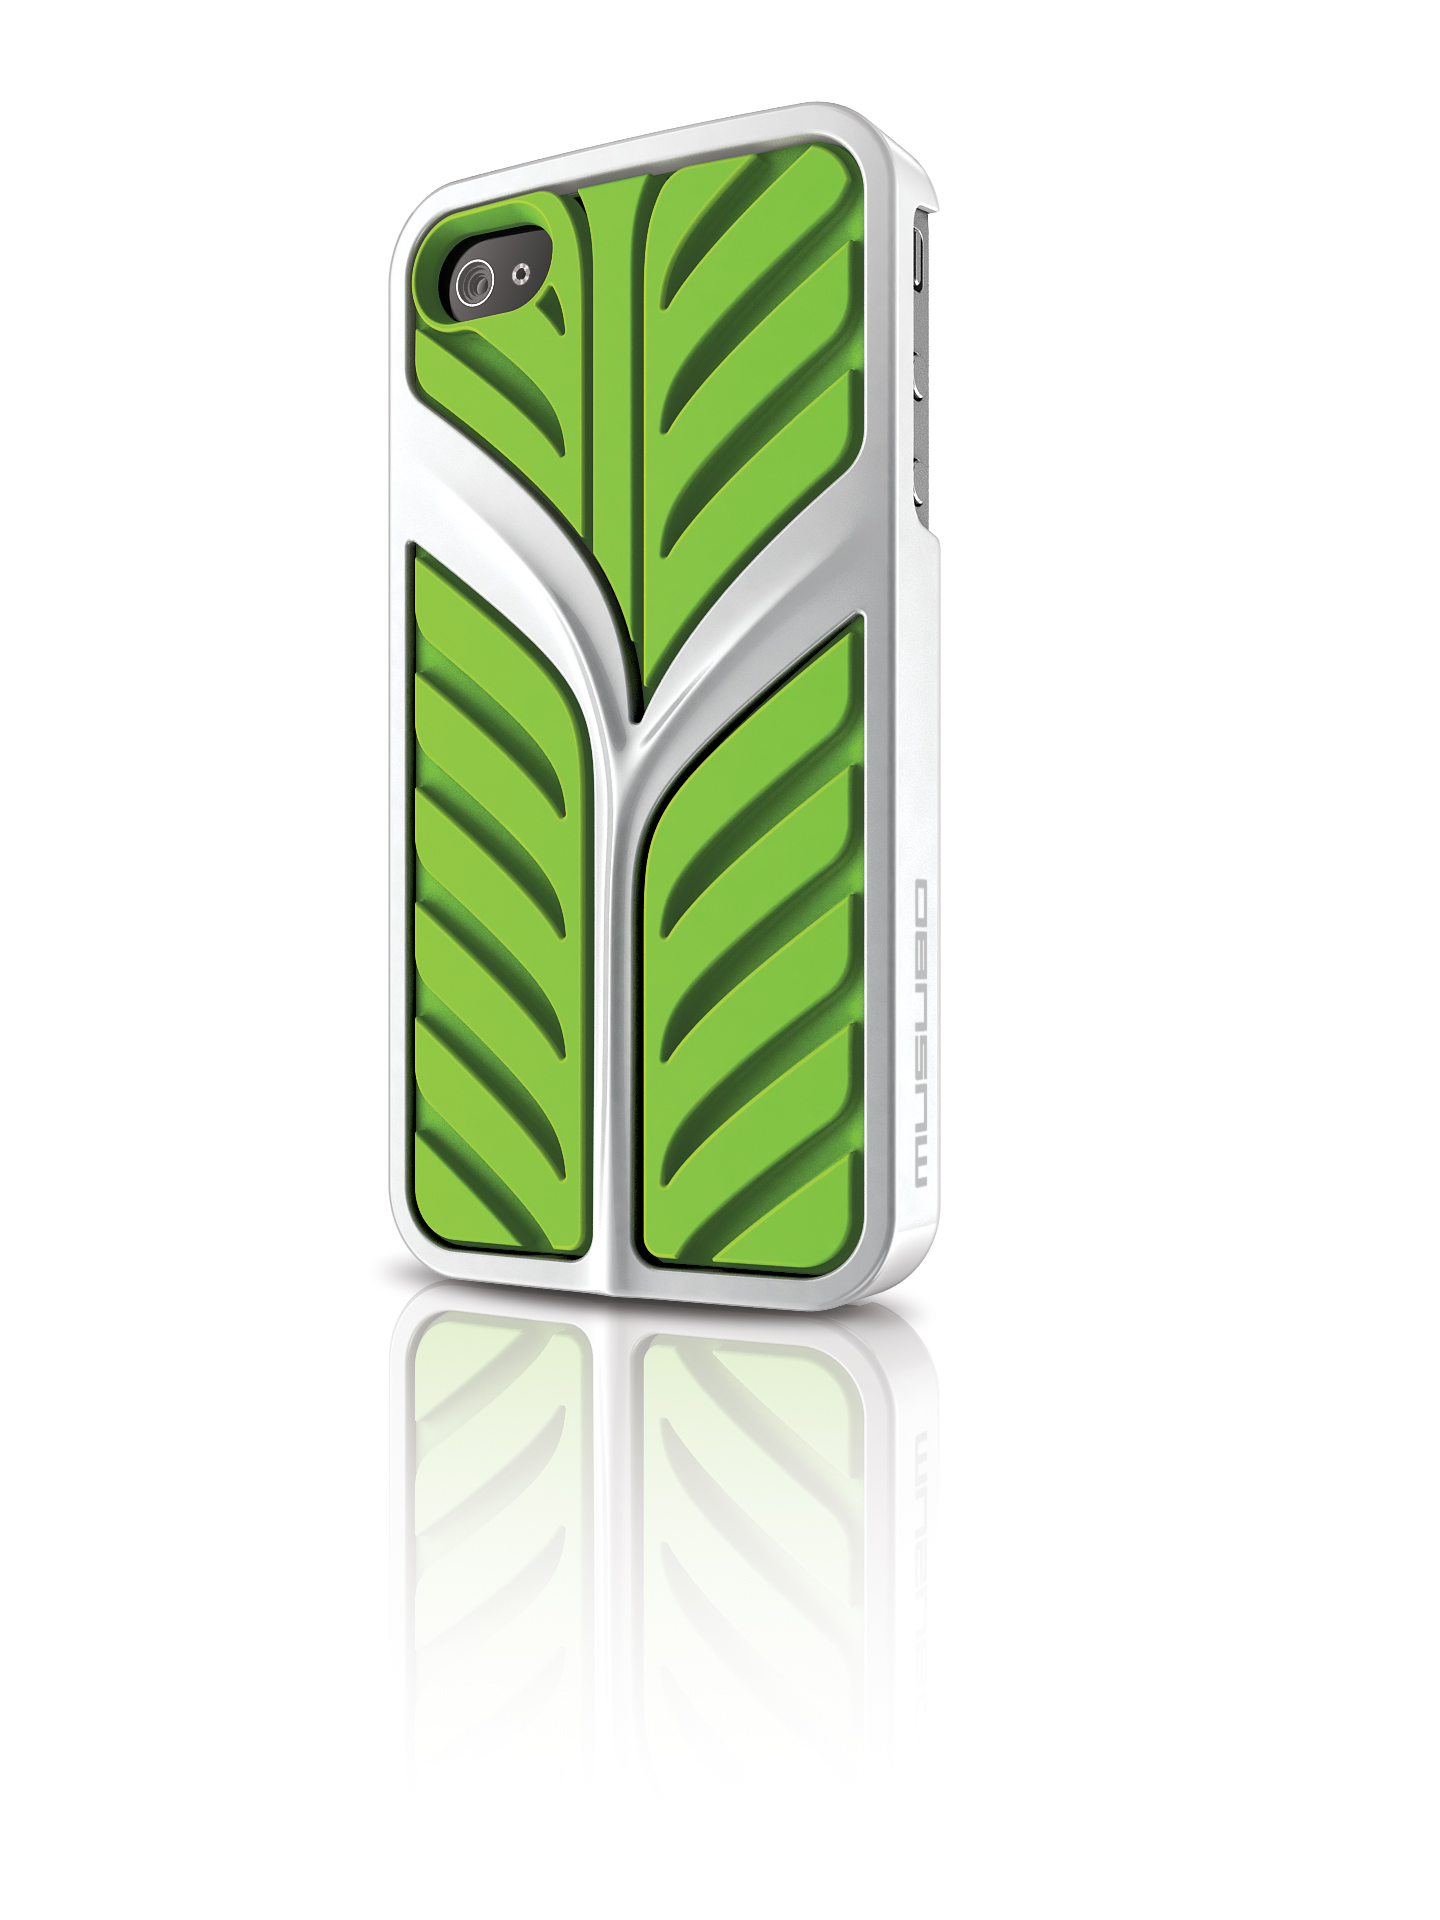 Original Musubo Case Eden  Iphone 4S/4G Green Retail